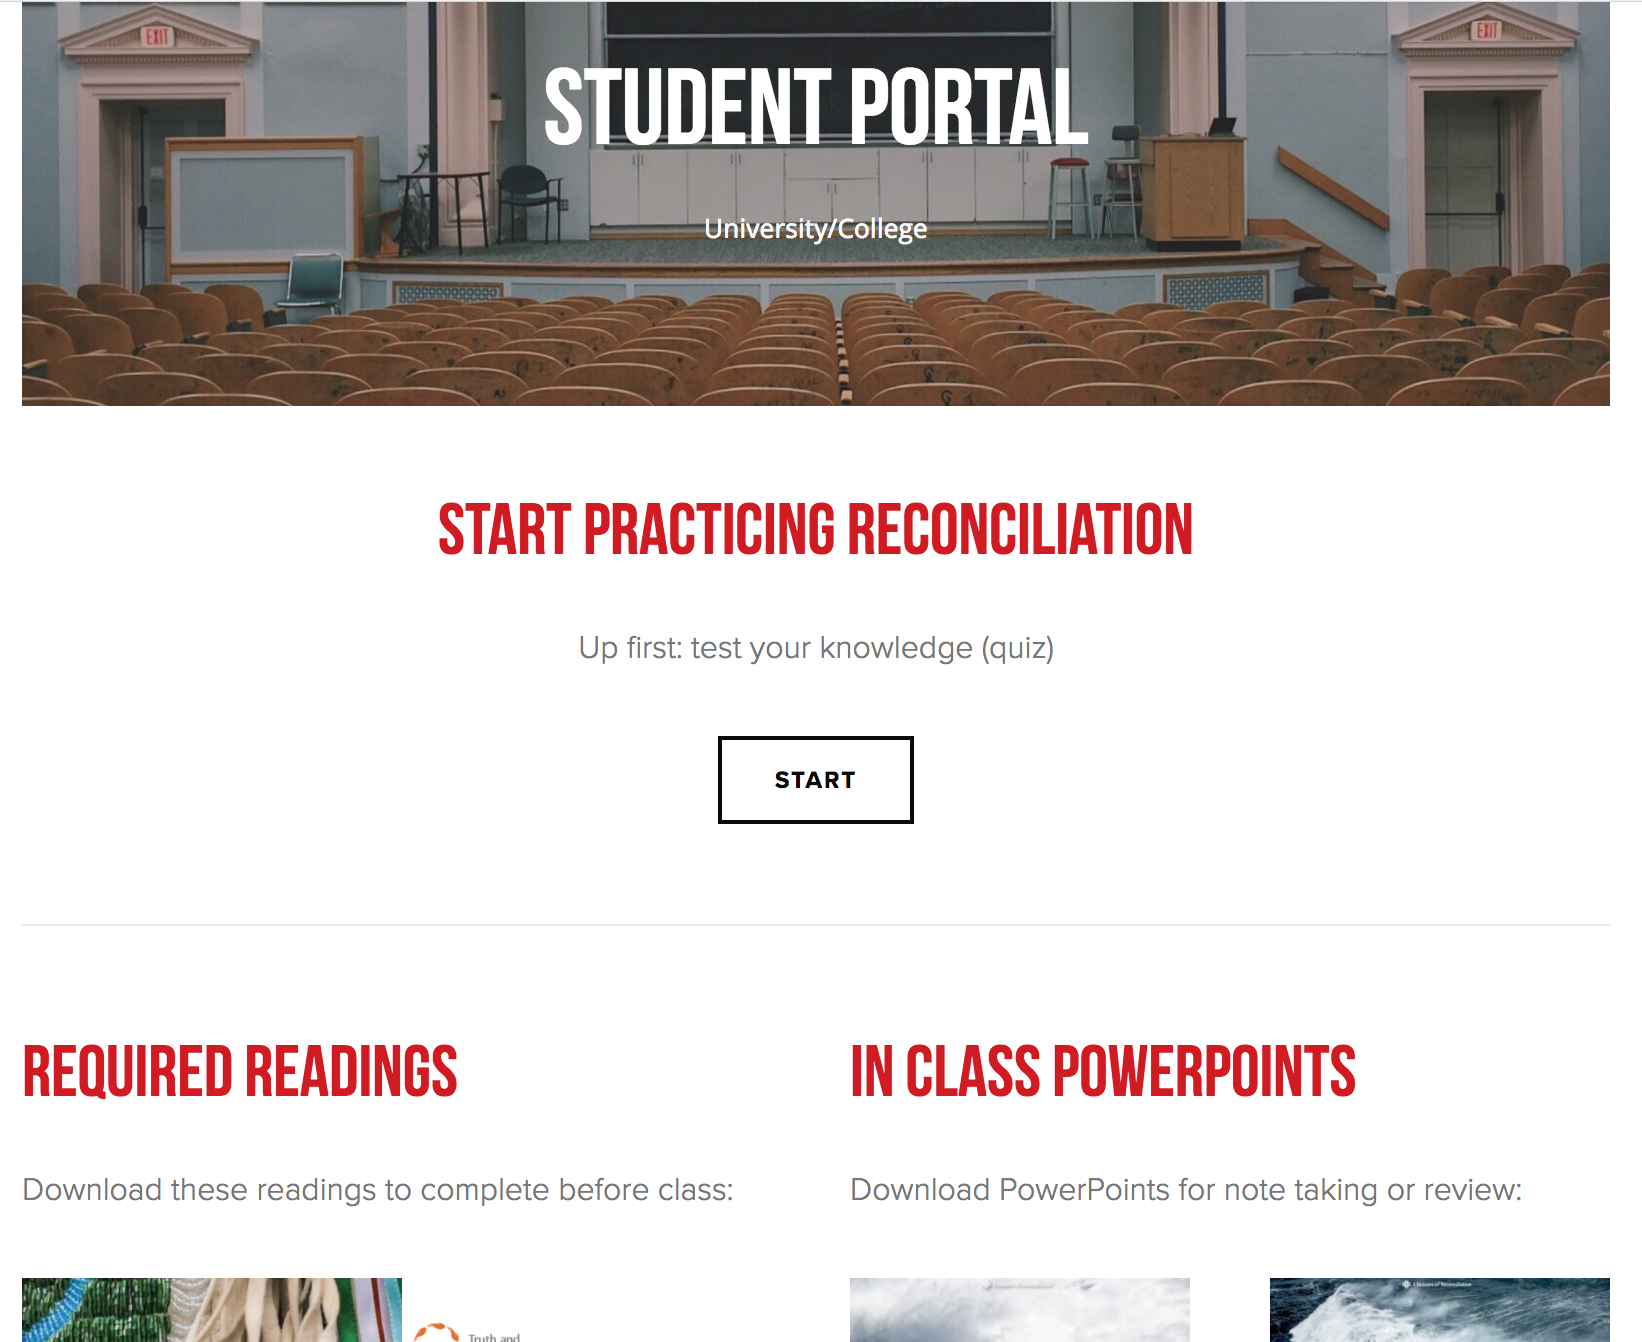 Student Portal - Students will access the online portal to complete the pre-unit quiz. Within their portal they will also find the required readings for the unit, powerpoints and a video playlist. Once complete they will take a final post-unit quiz which may be graded for the instructor use.